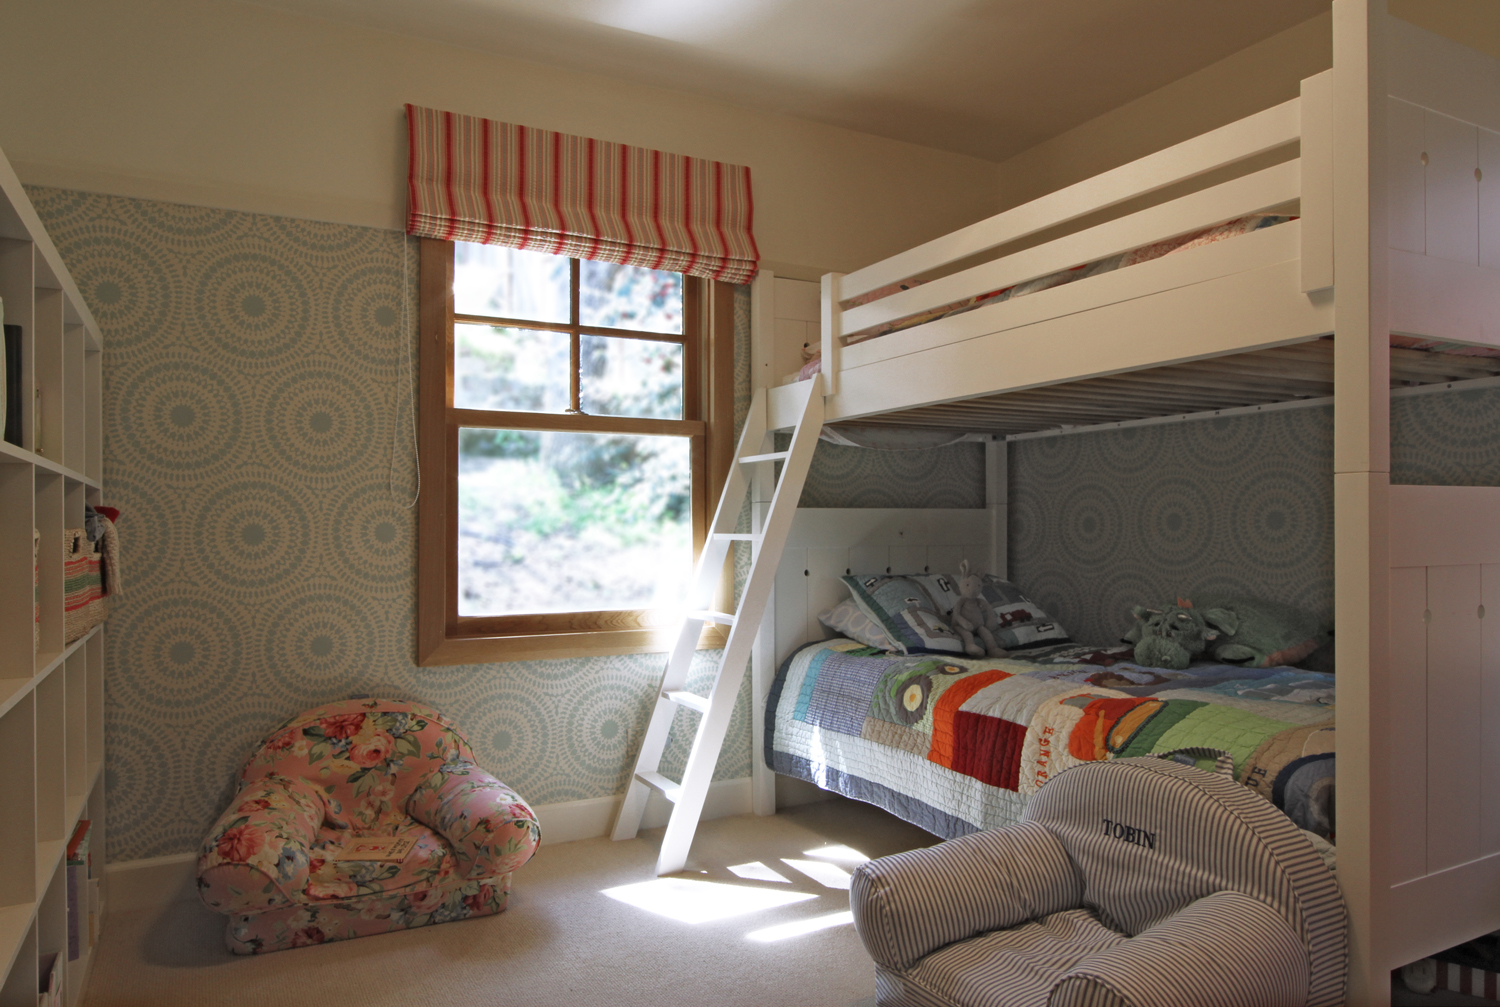 Small Spaces: A shared children\'s bedroom. — PENELOPE JONES ...